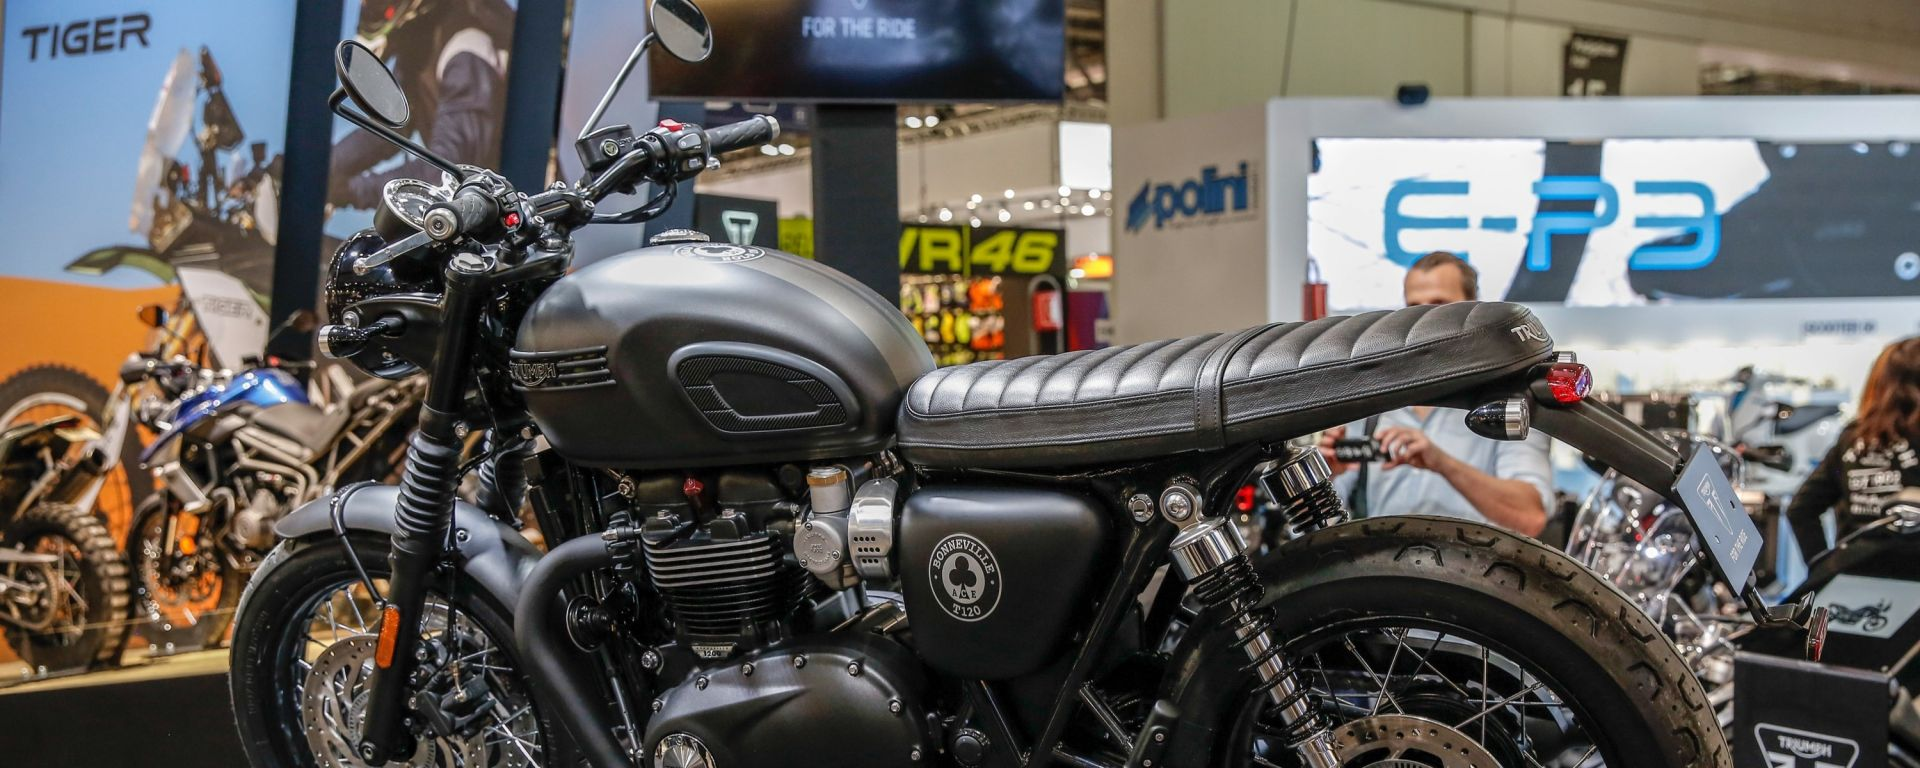 Triumph Bonneville T120 Ace: edizione limitata a Eicma 2018 [VIDEO]